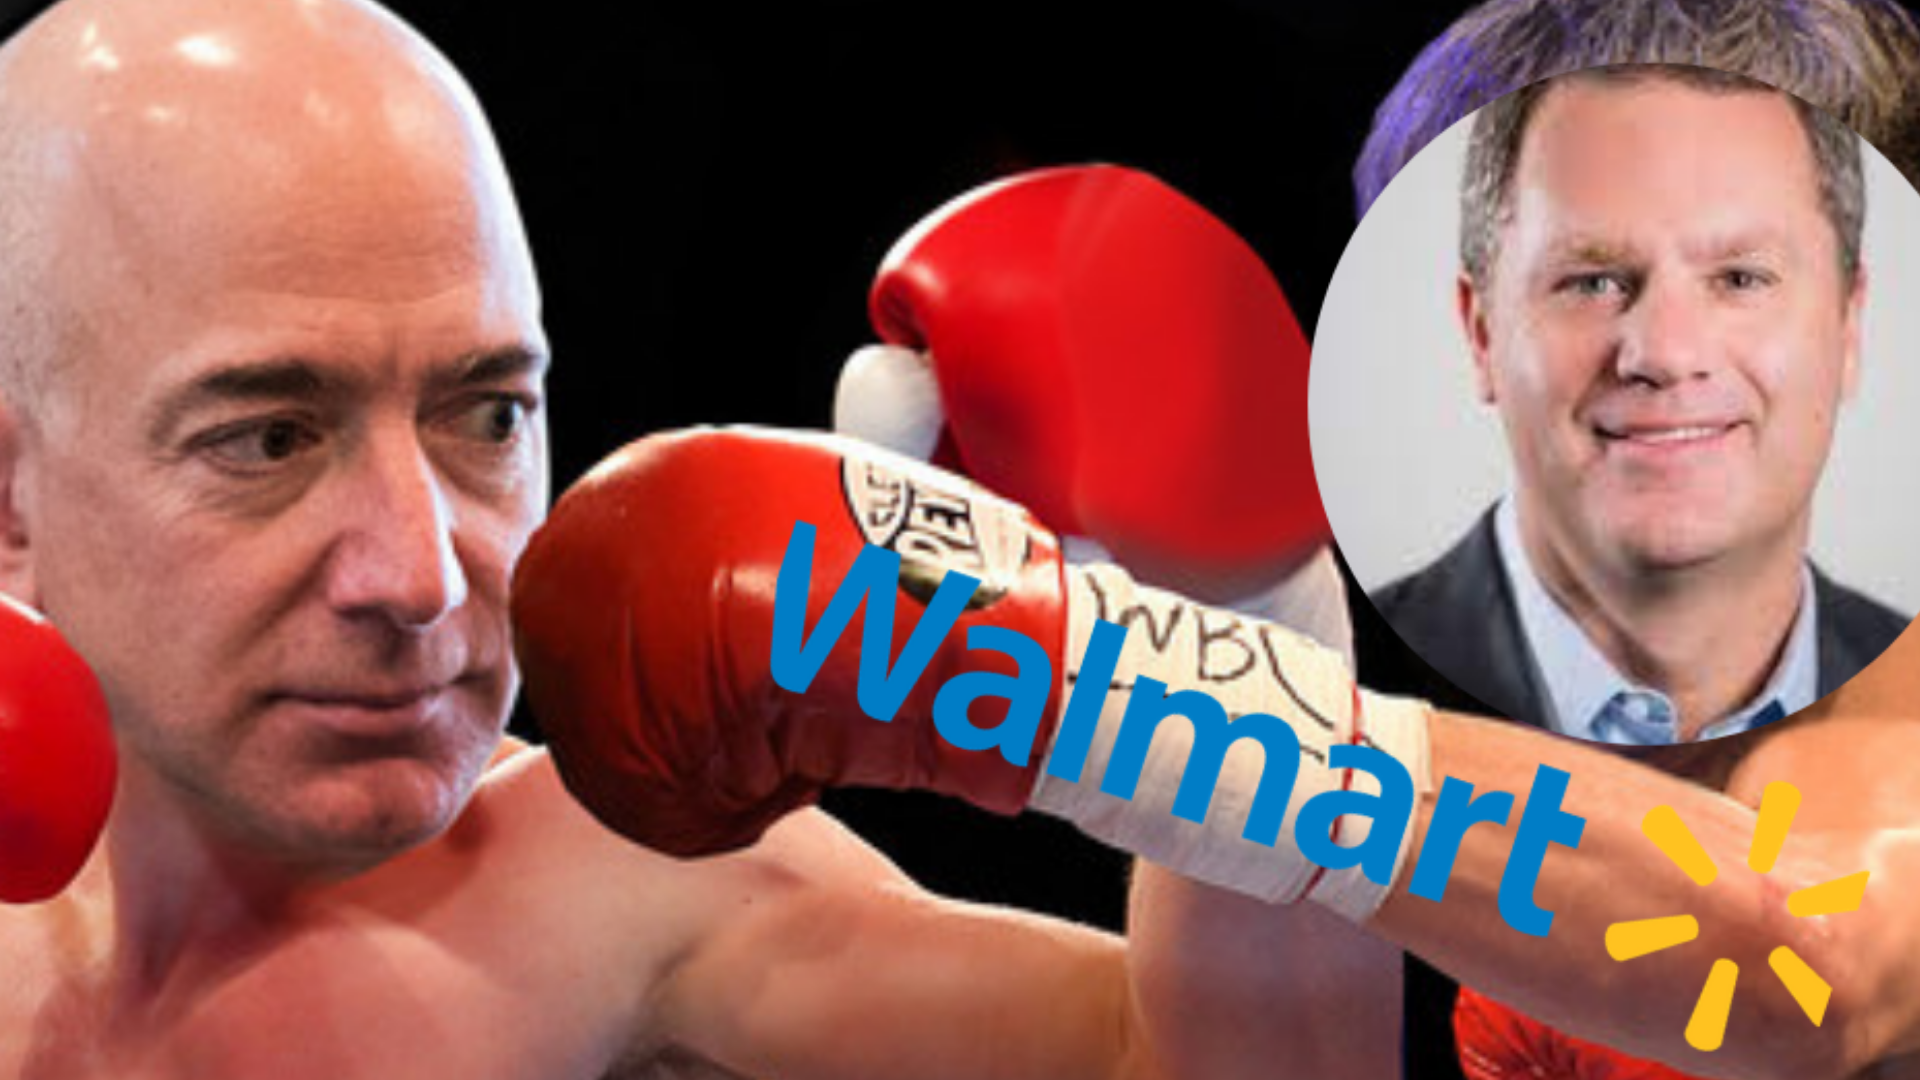 Amazon Overtakes Walmart as Top Clothing Retailer in the US - and What This Means for Ecommerce